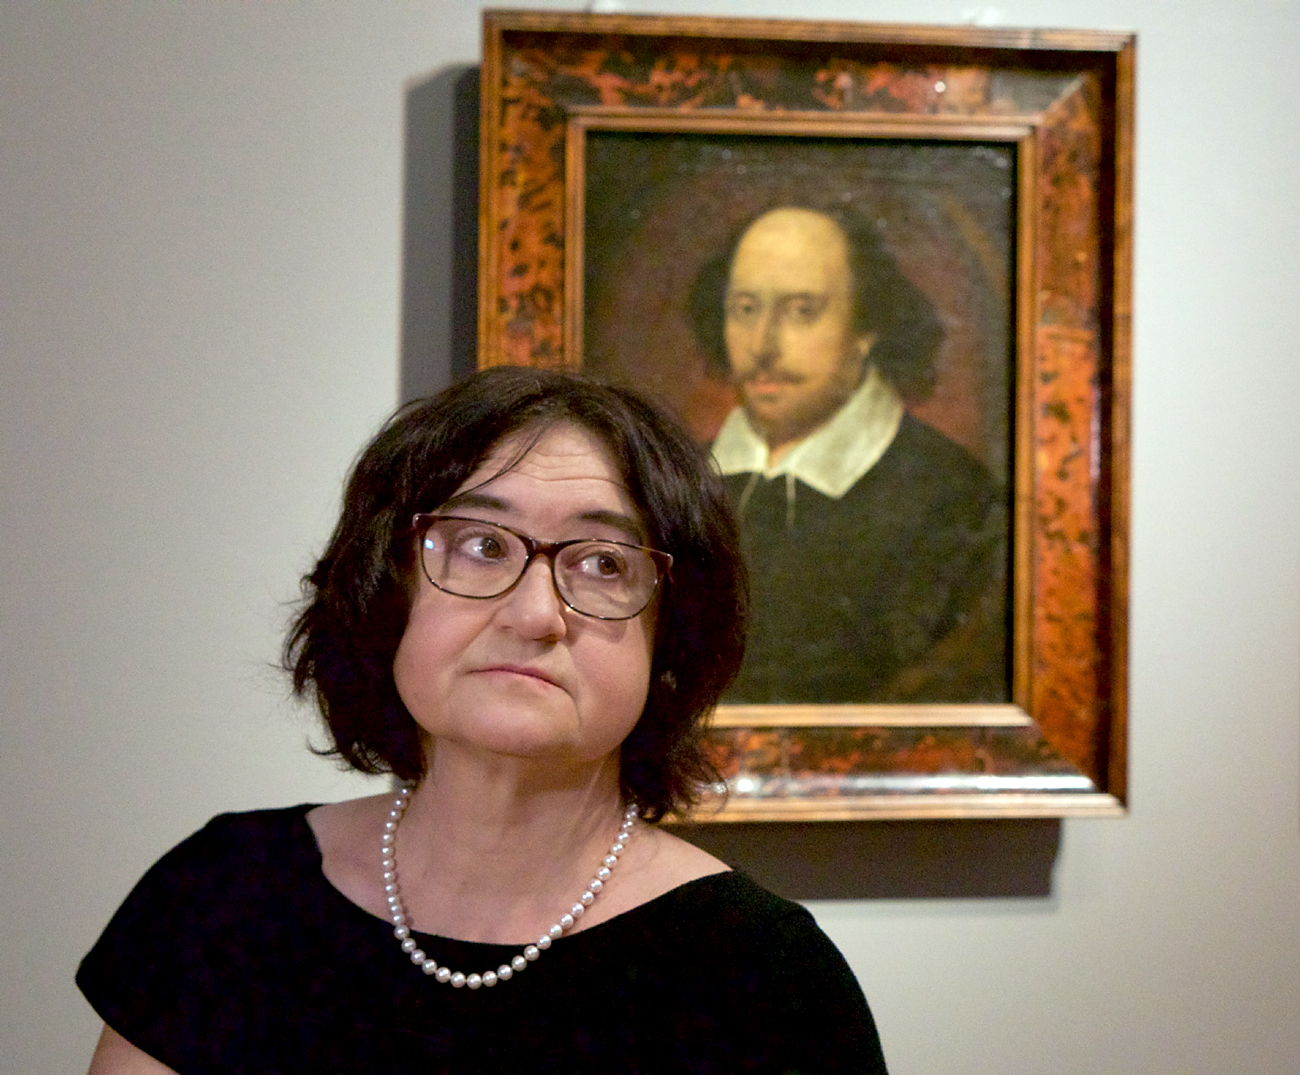 Director of the Tretyakov Gallery Zelfira Tregulova at the exhibition titled 'From Elizabeth to Victoria. English portrait from the collection of the National Portrait Gallery, London' in the Tretyakov Gallery.